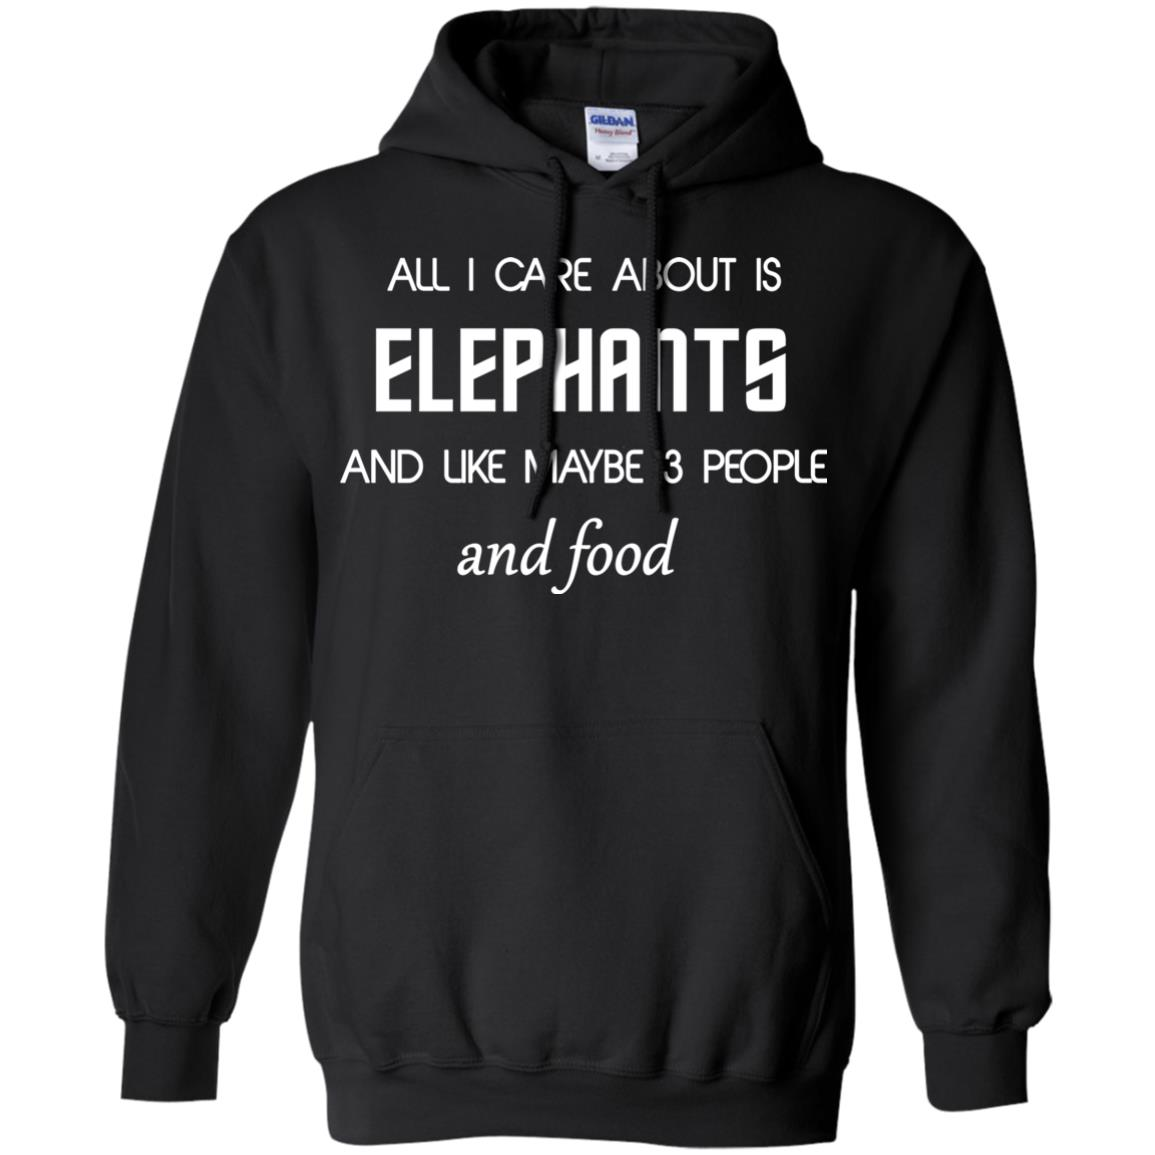 image 4197 - All I care about is elephants shirt, hoodie, sweater